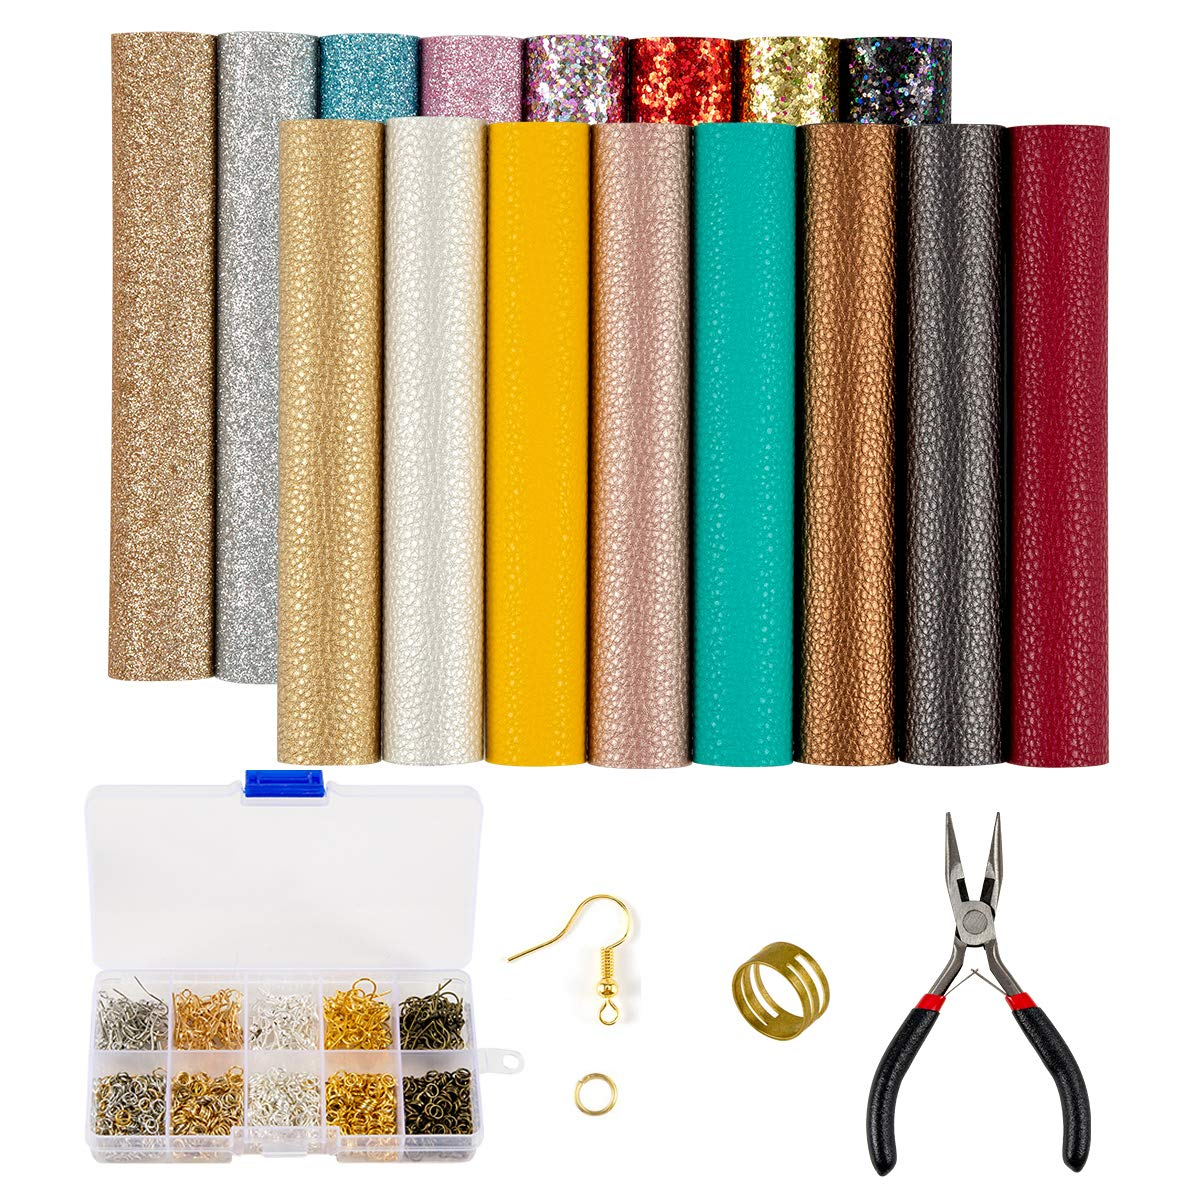 19 Pieces Faux Leather Earrings Making Kit, Synthetic Leather Fabric Sheets, Litch and Glitter Faux Leather with Tools for Earrings Bows Jewelry Crafts Making by Homtable